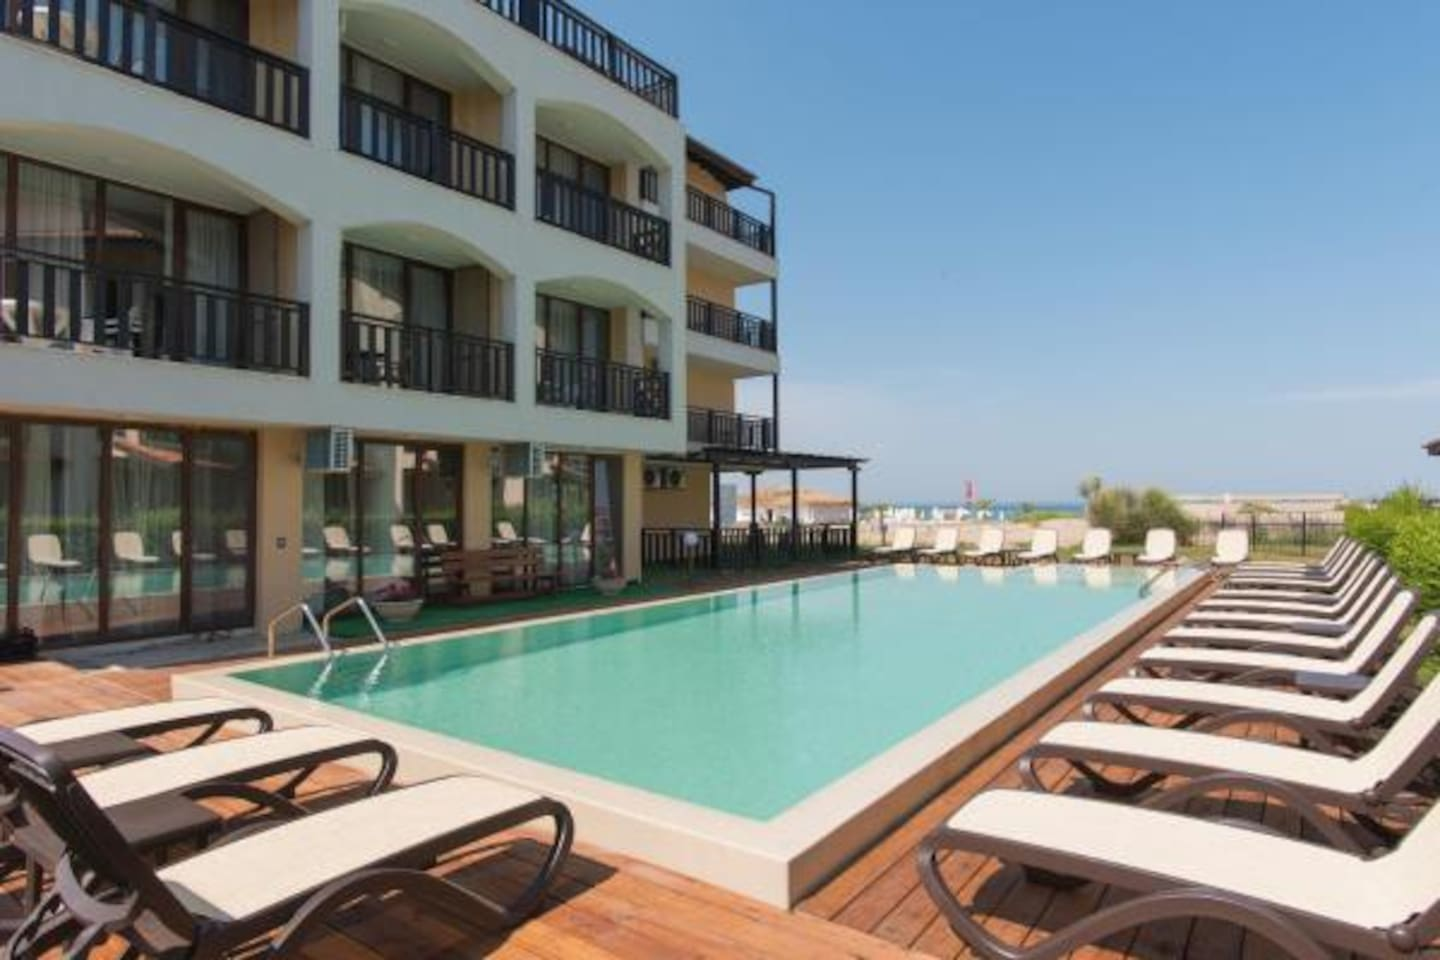 The Oasis del Sol Hotel is a new, modern and not very large hotel located on the first line of the amazing Oasis Beach. Outdoor Swimming Pool Near The Hotel! Infinity pool, water is purified with the help of new technology with salt electrolysis!